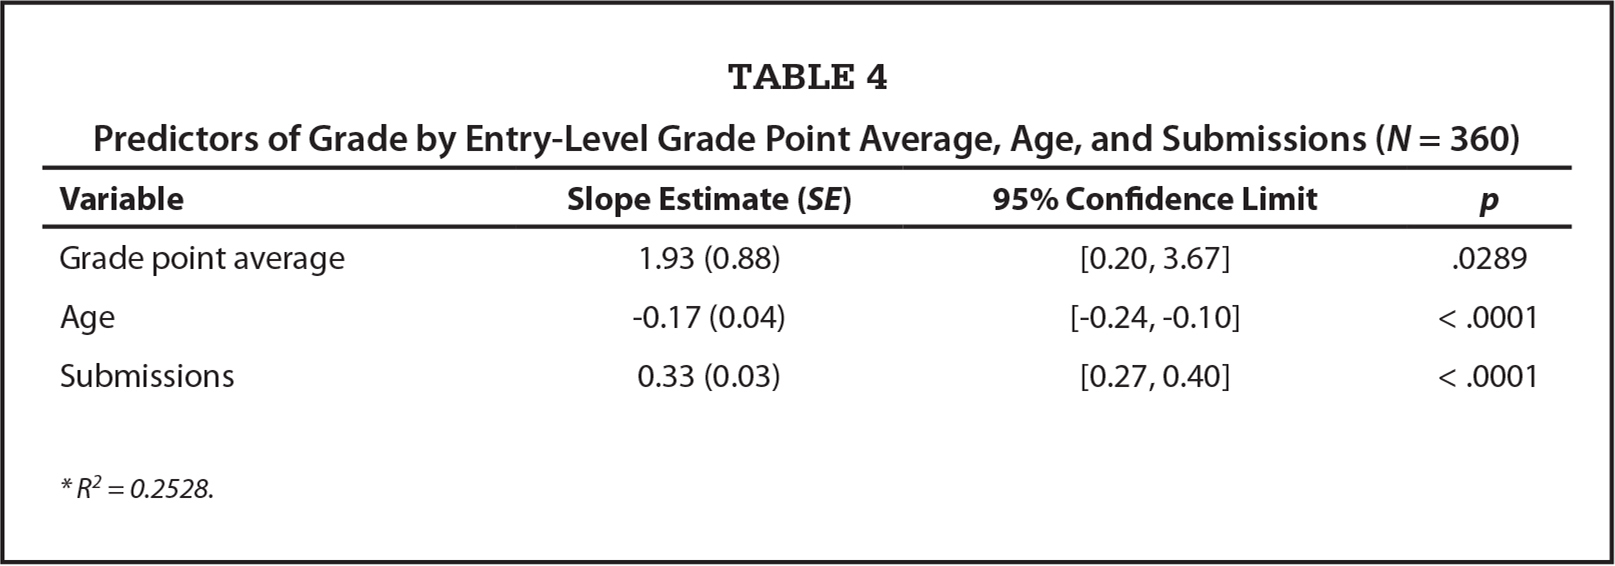 Predictors of Grade by Entry-Level Grade Point Average, Age, and Submissions (N = 360)